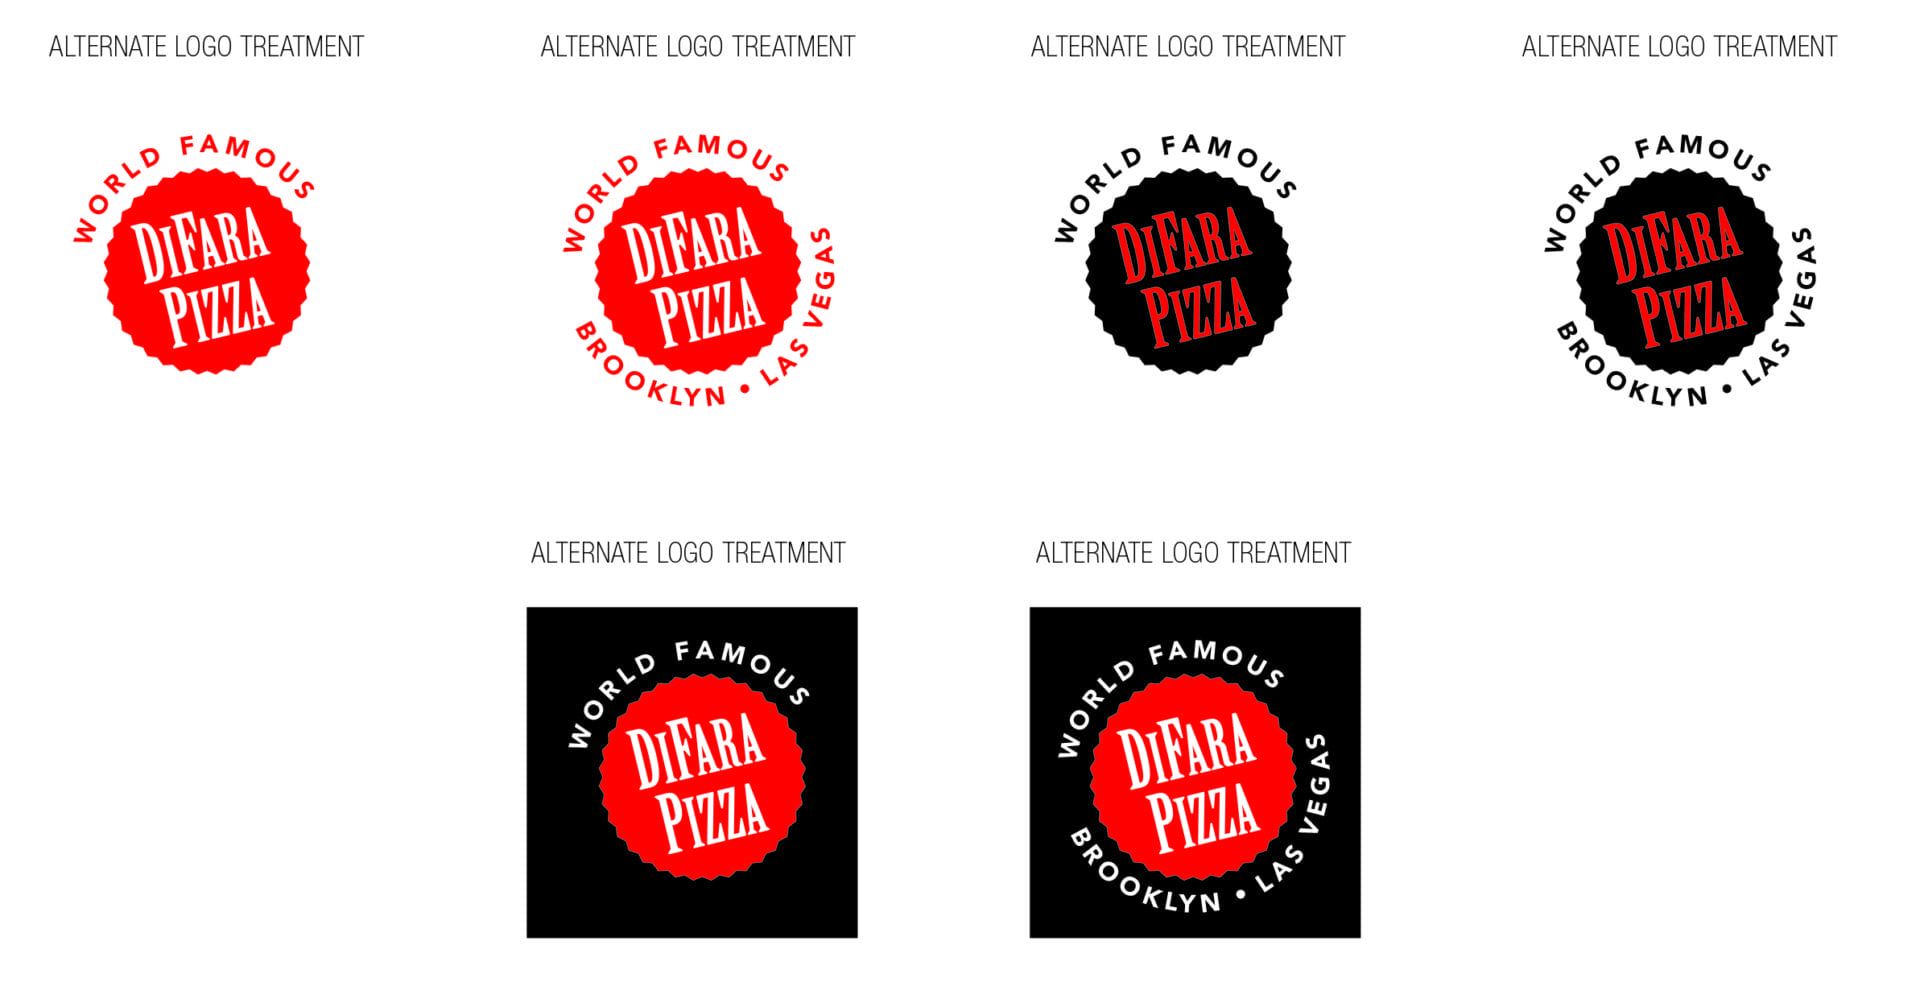 Di Fara Pizza alternate logos